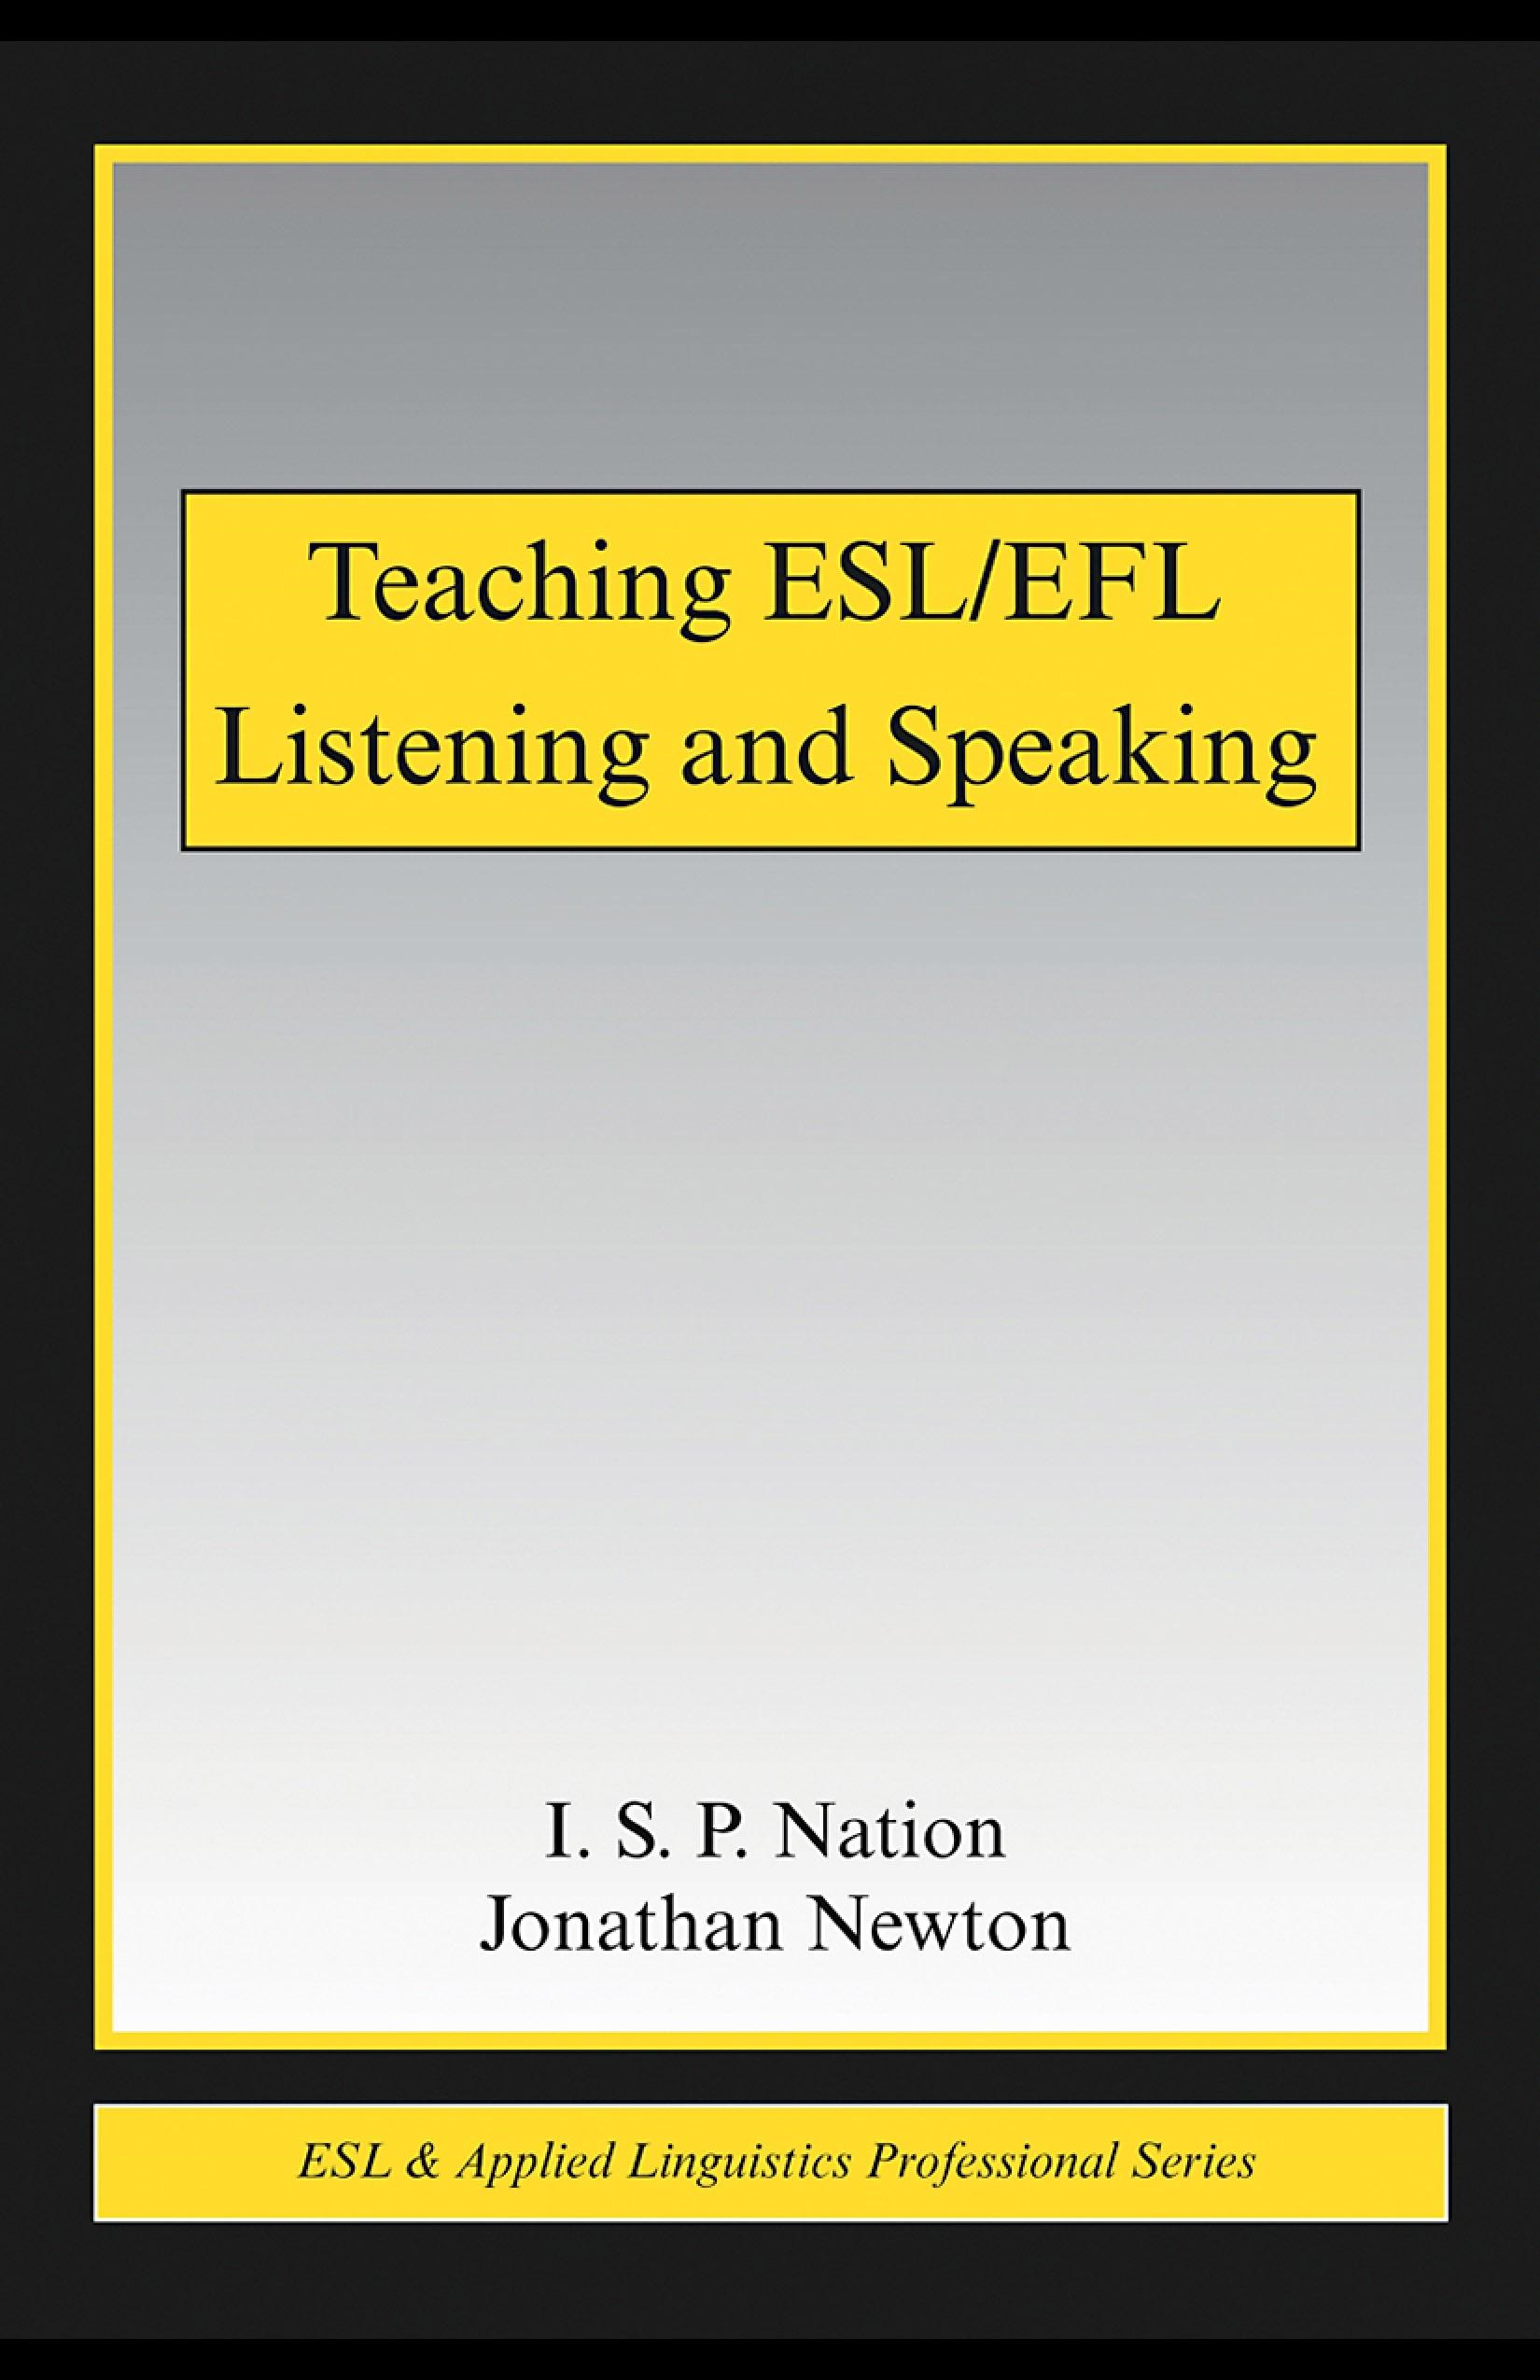 Teaching ESL/EFL Listening and Speaking By: I.S.P. Nation